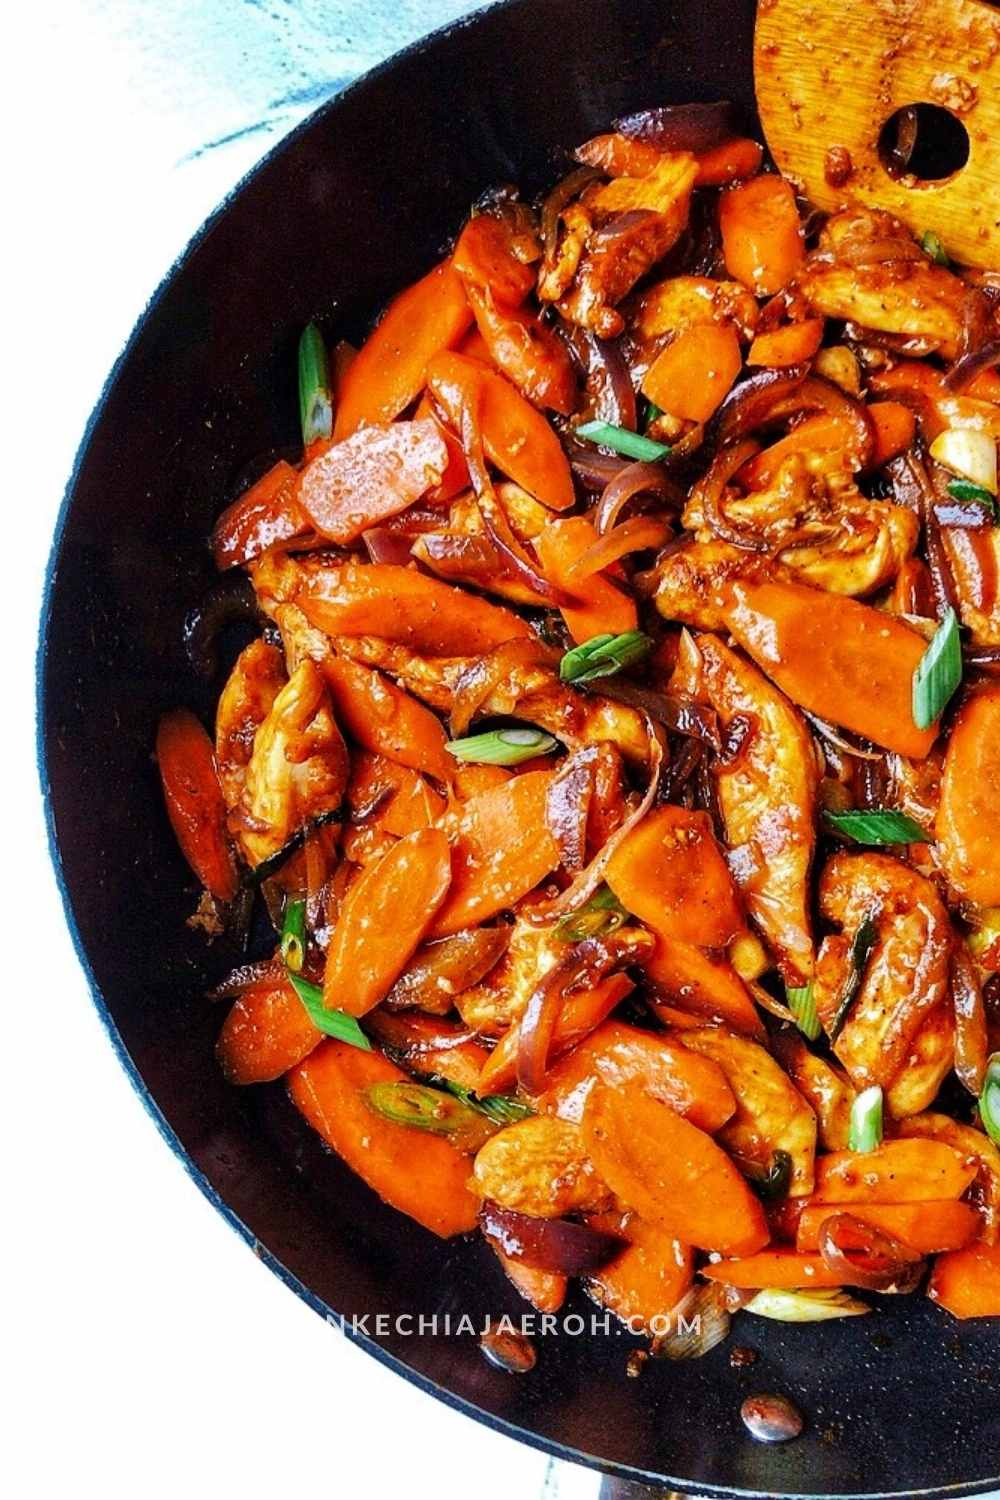 Finally, add the stir-fried vegetables back to the chicken and toss. Season and adjust flavors. Chicken carrot stir fry is ready; serve with white rice, cauliflower rice, or quinoa. I love love this sauce, one of my favorites!